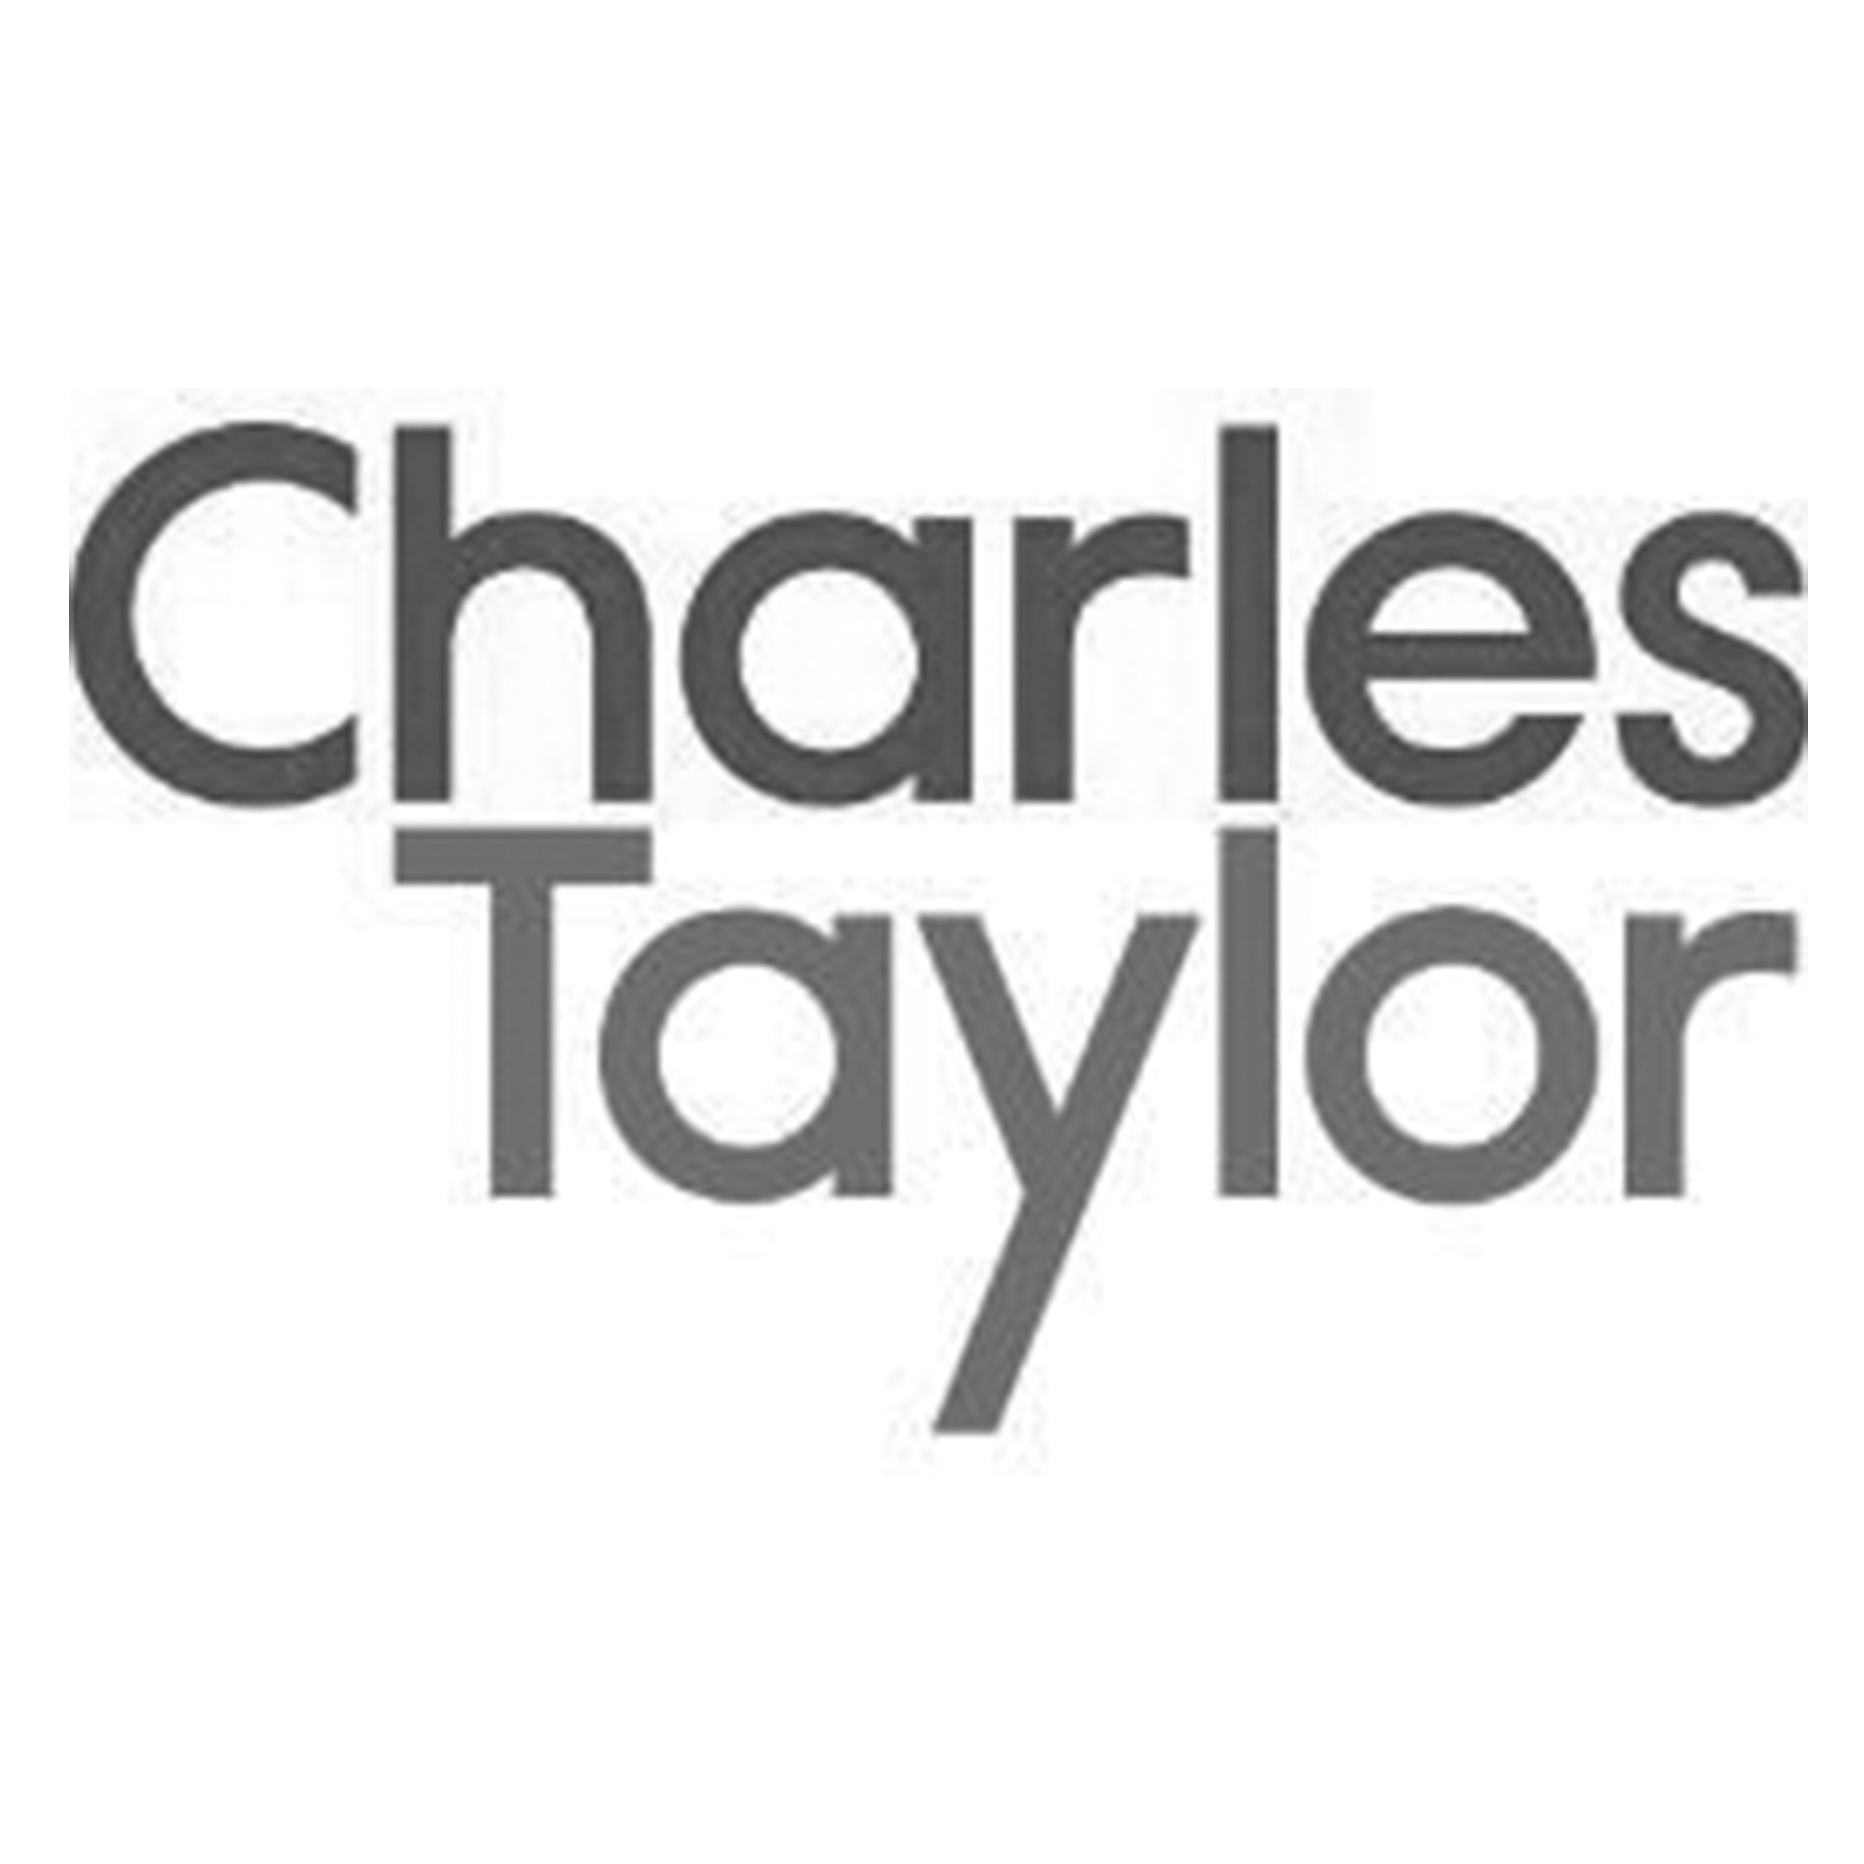 Charles Taylor - gs.png